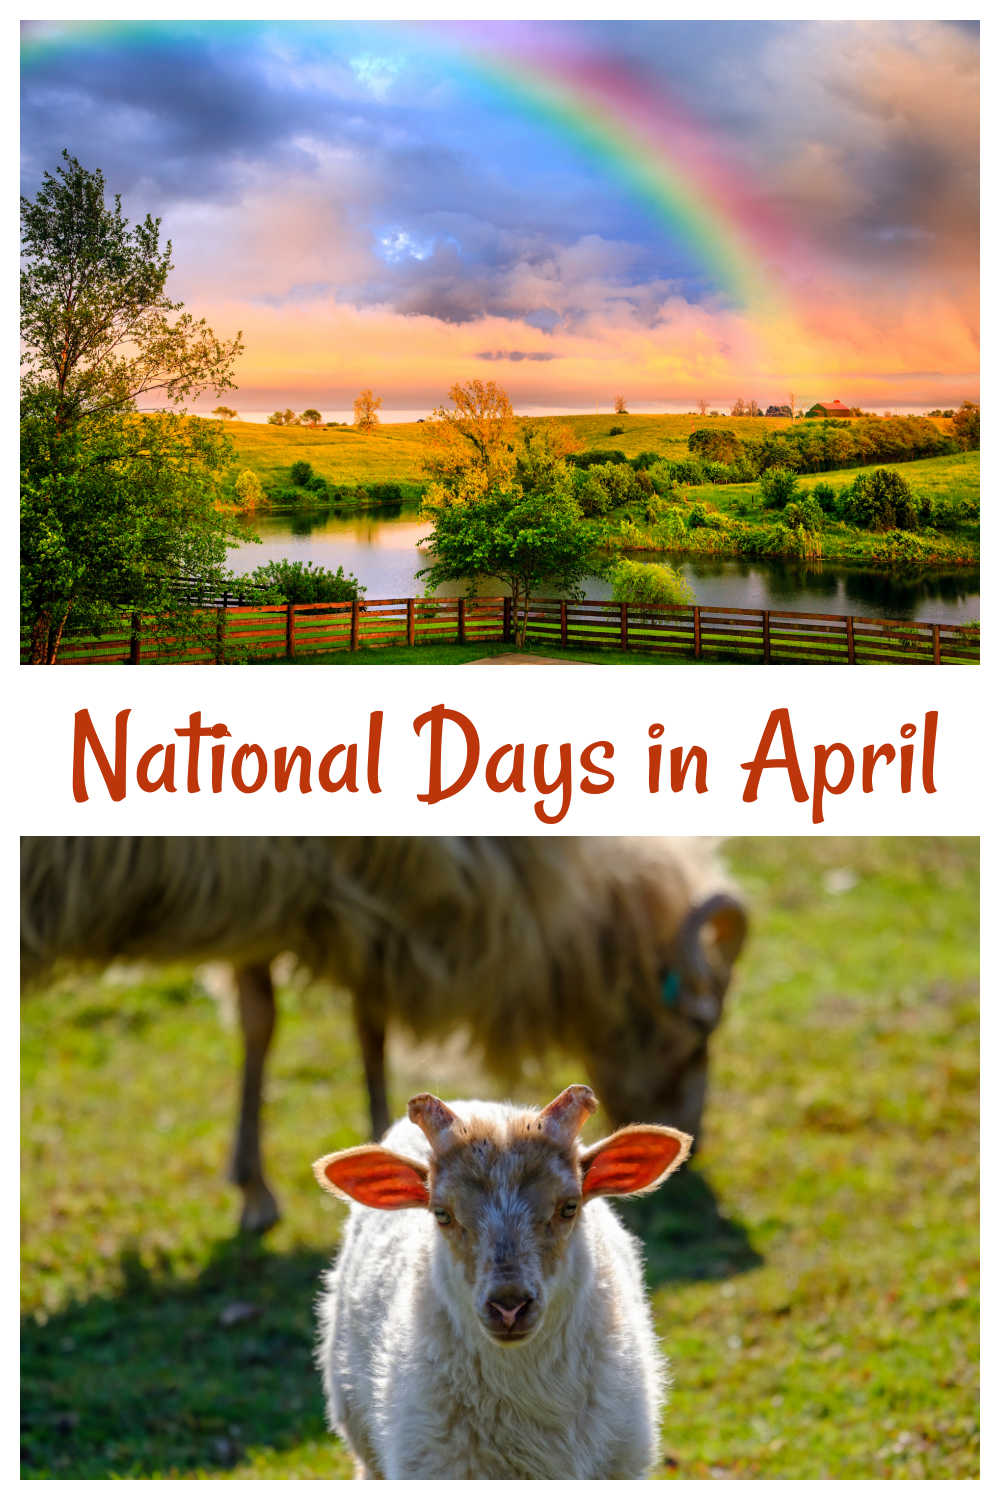 Rainbow and farm animals with words National Days in April